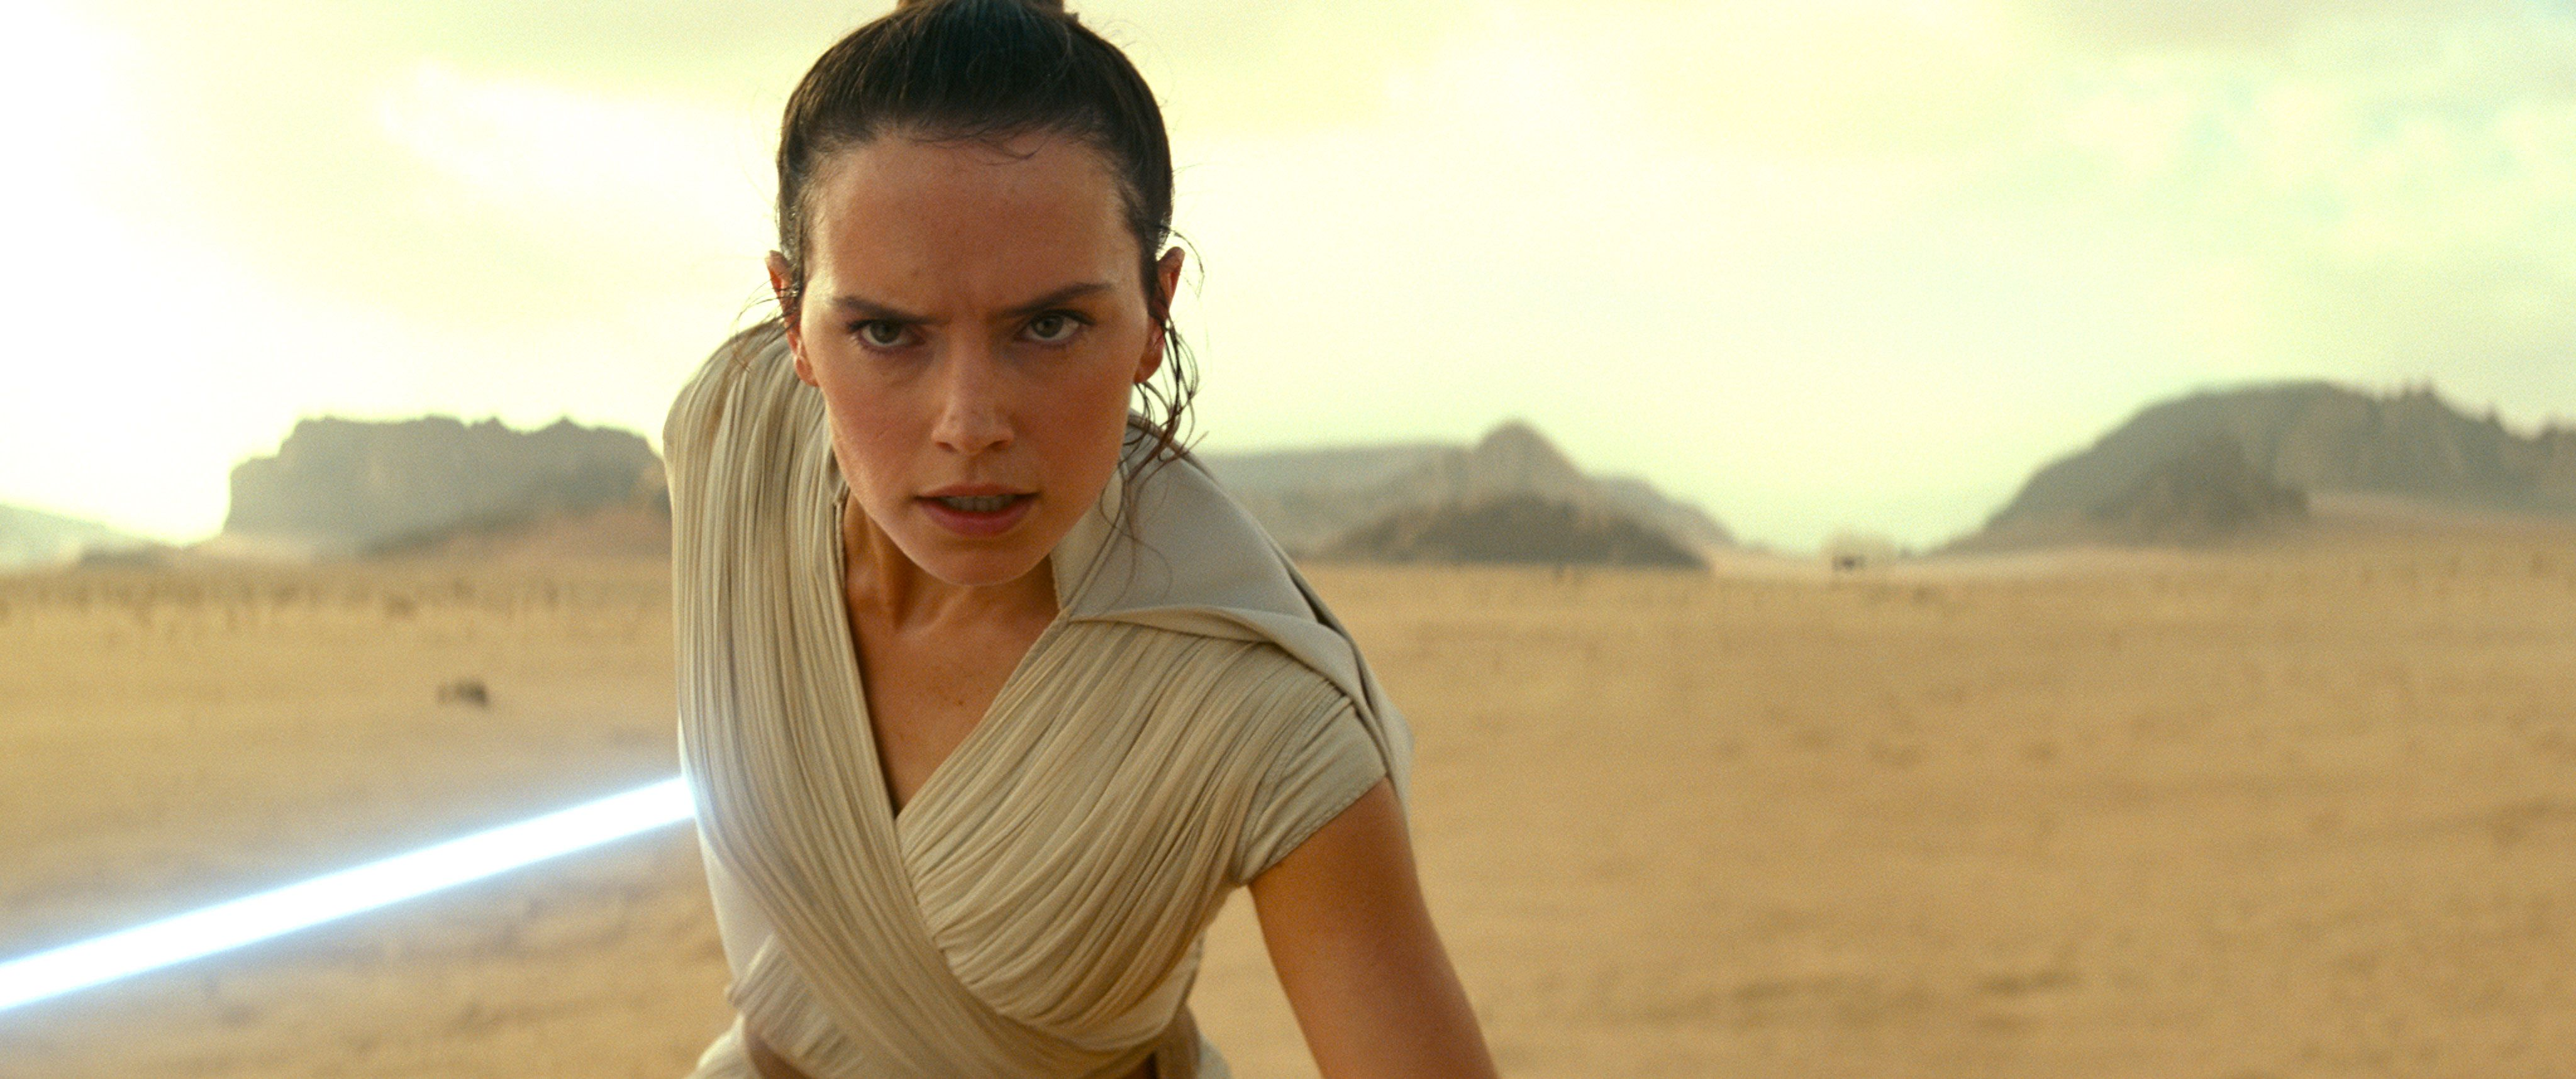 Star Wars: The Rise of Skywalker gets another barmy fan theory about Rey's parentage